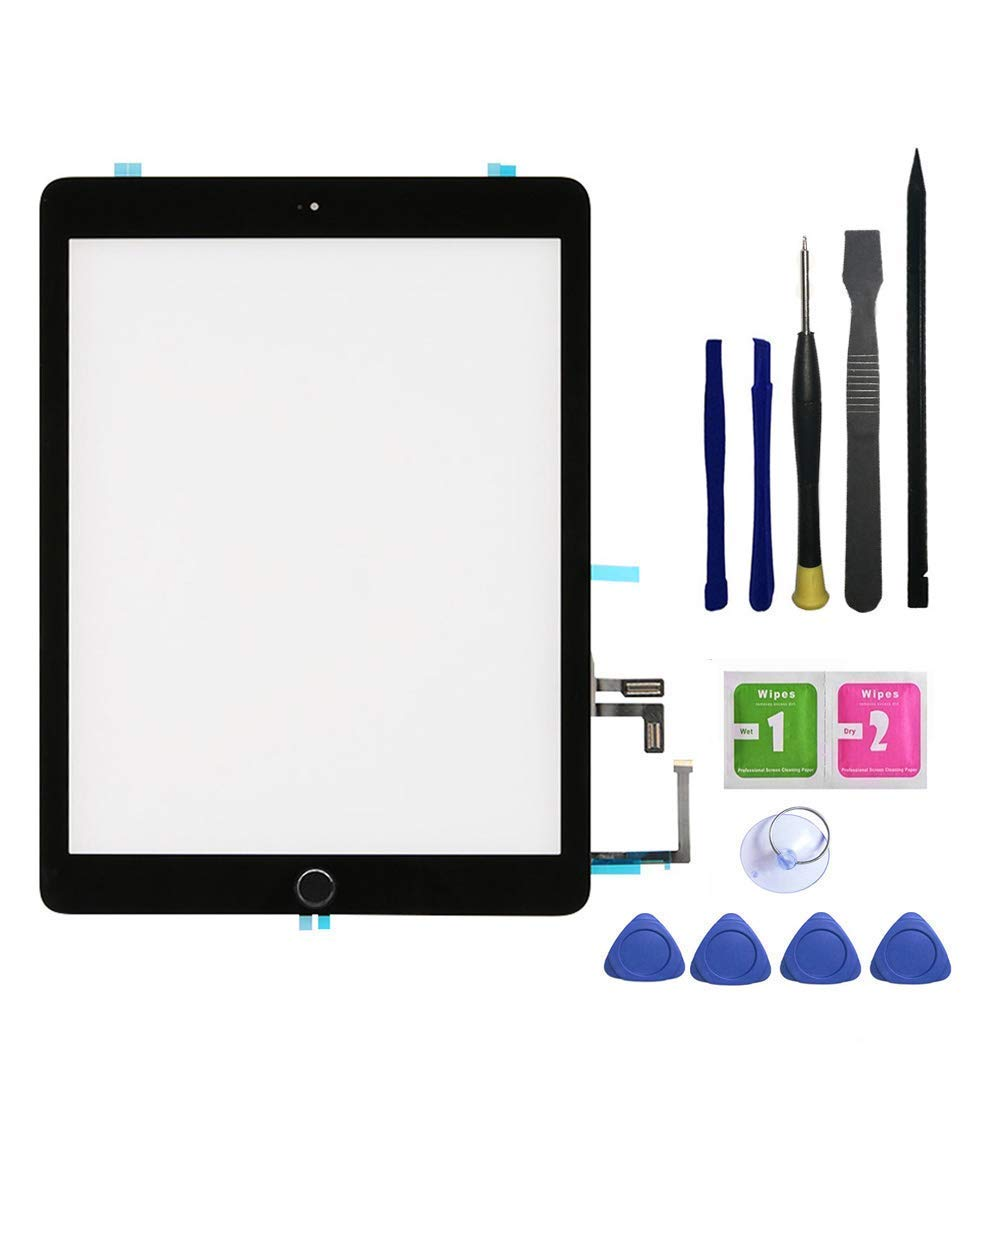 Feiyuetech Black iPad 5 2017 (A1822, A1823) Touch Screen Digitizer Replacement Front Glass Assembly -Includes Home Button + Camera Holder+PreInstalled Adhesive with Tools kit.